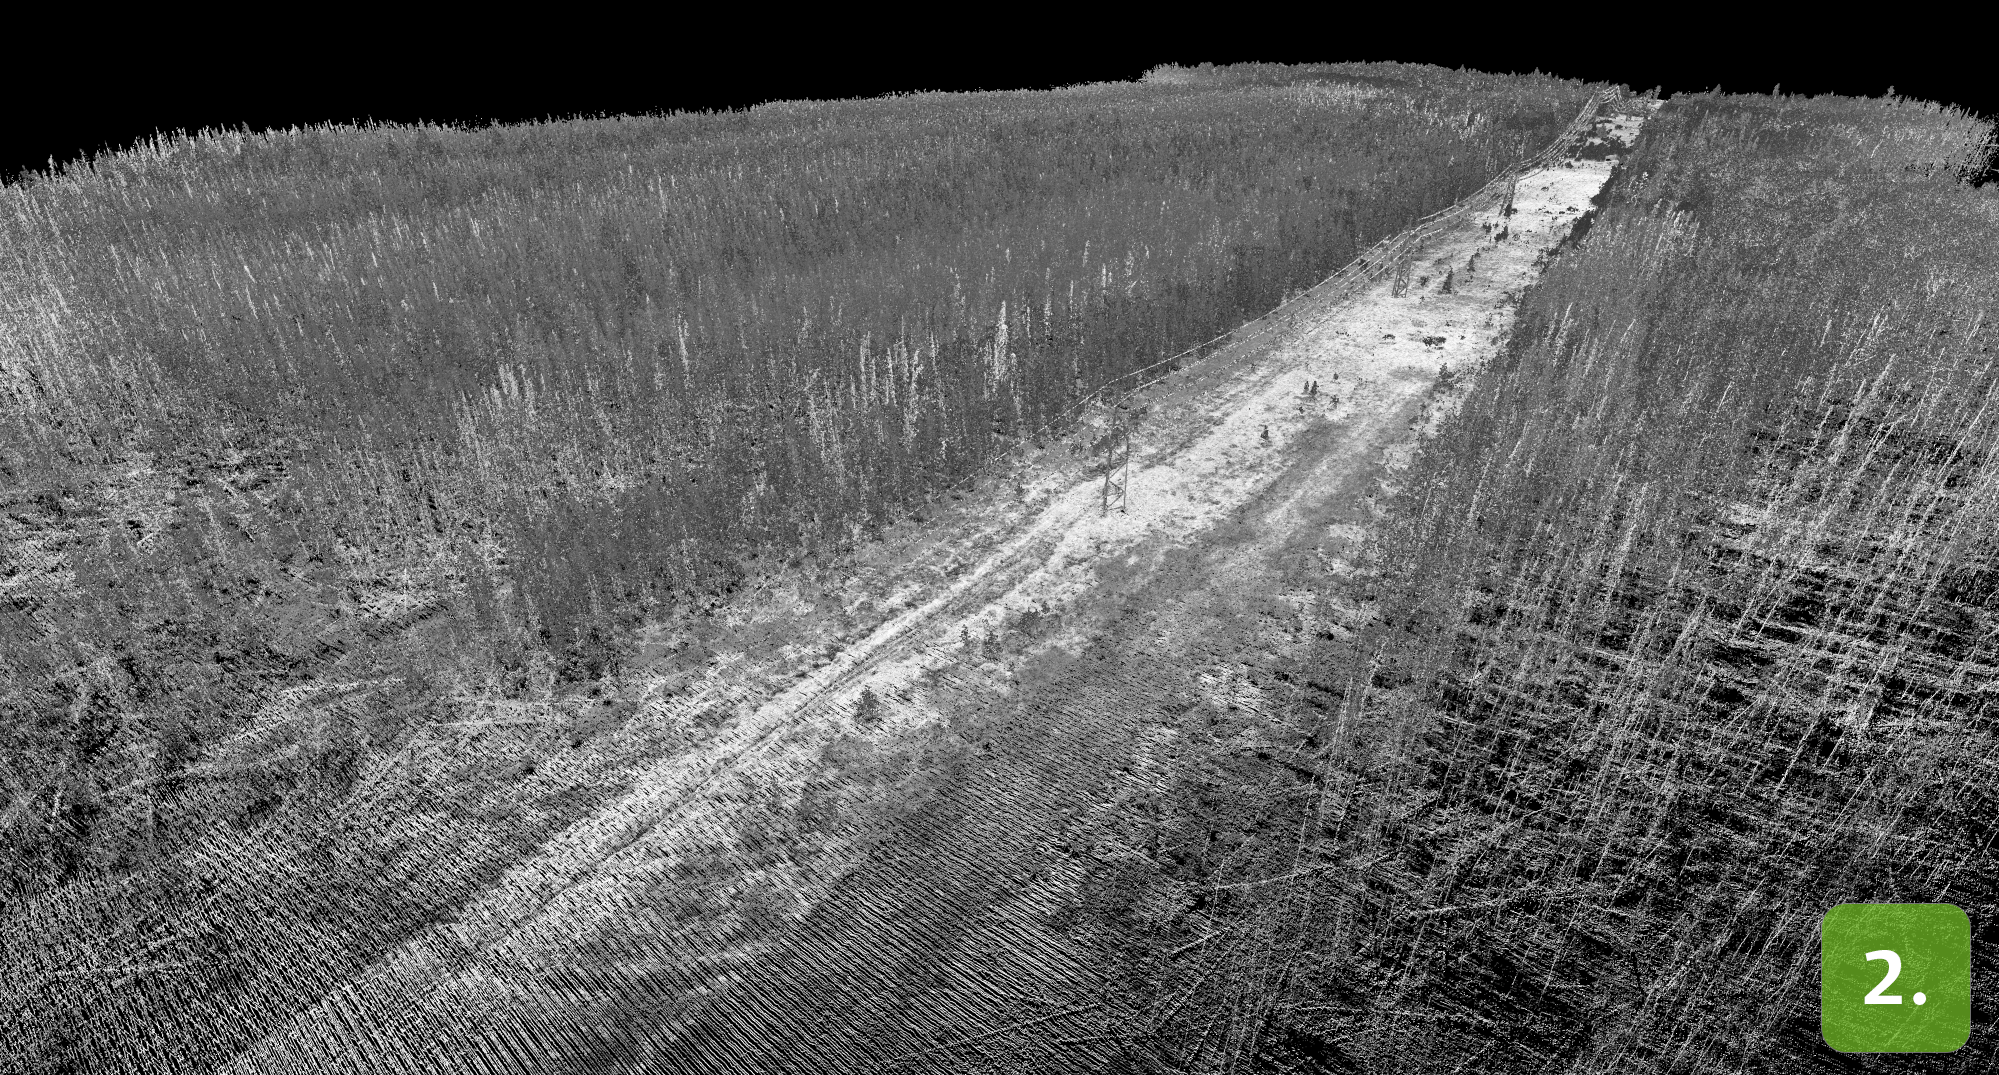 Airborne LiDAR scan of powerlines and forest